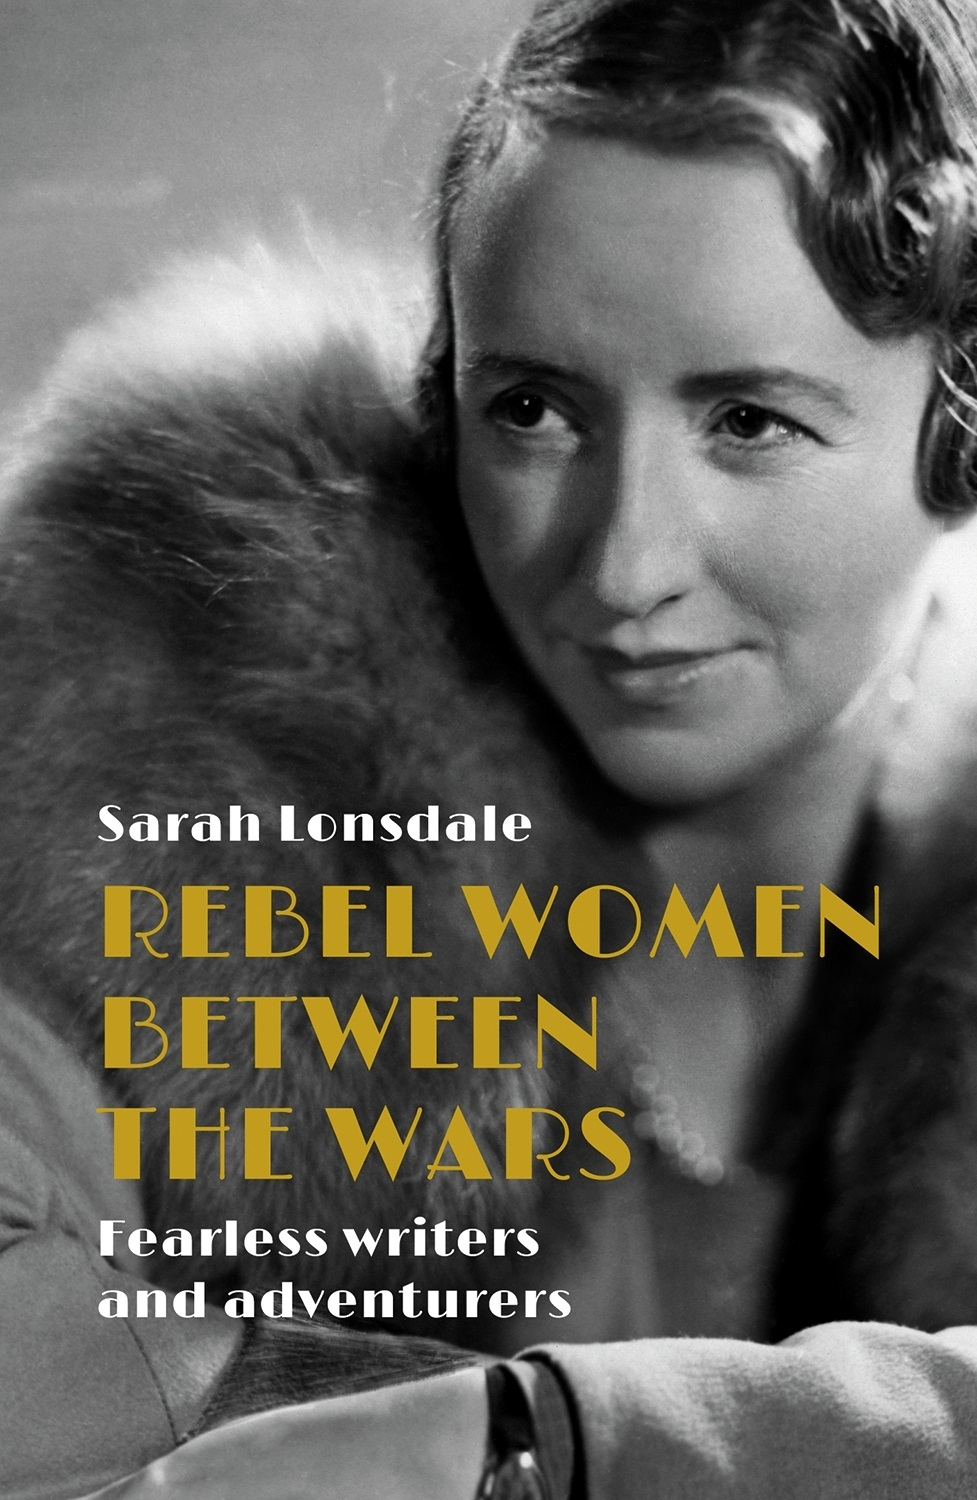 Rebel women between the wars – Q&A with Sarah Lonsdale